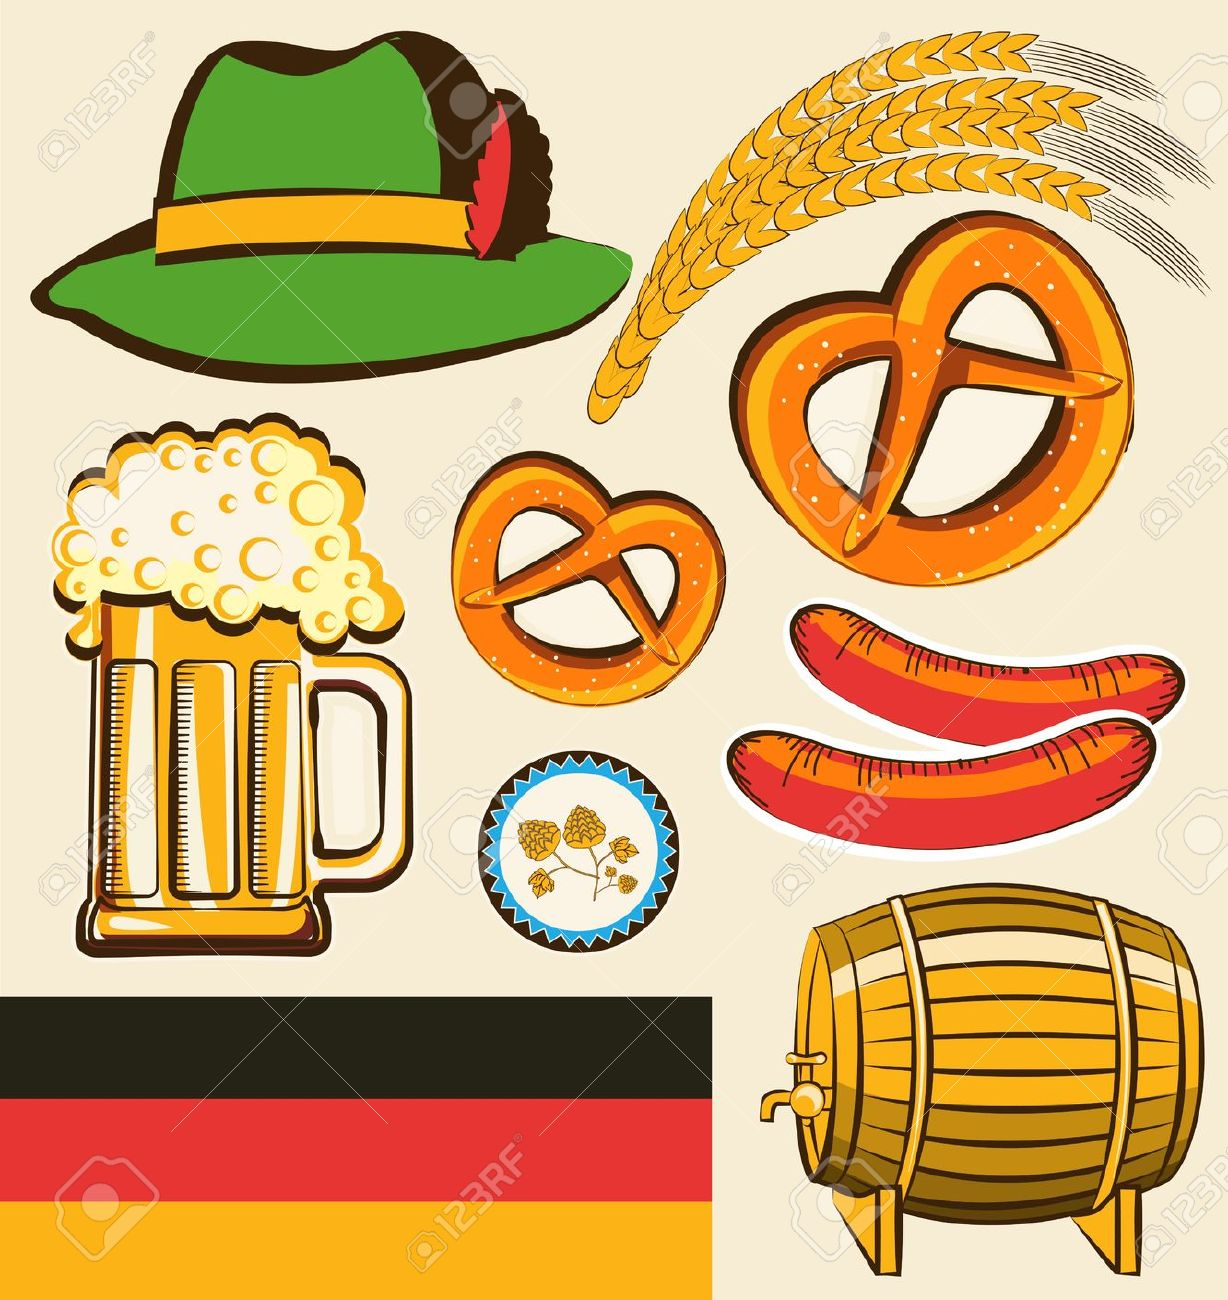 Free german food clipart.